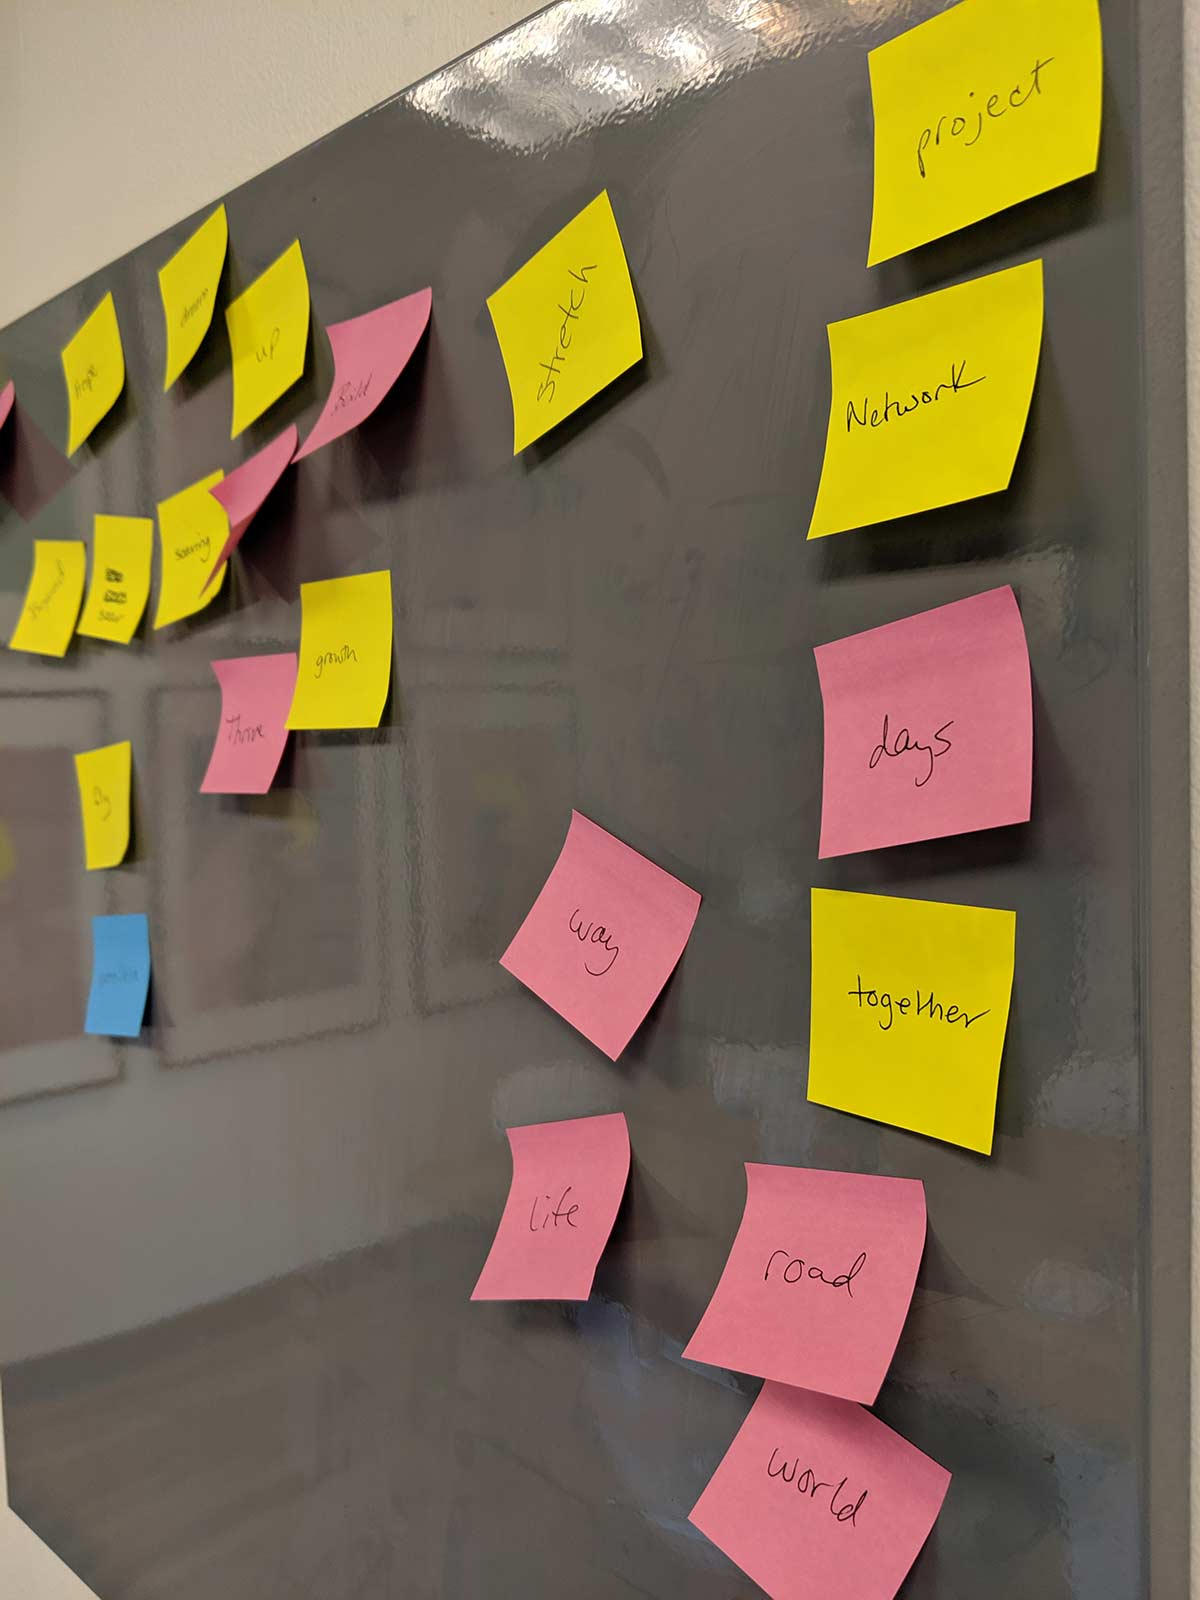 Startup Brandstorming process: How to Name Your Company